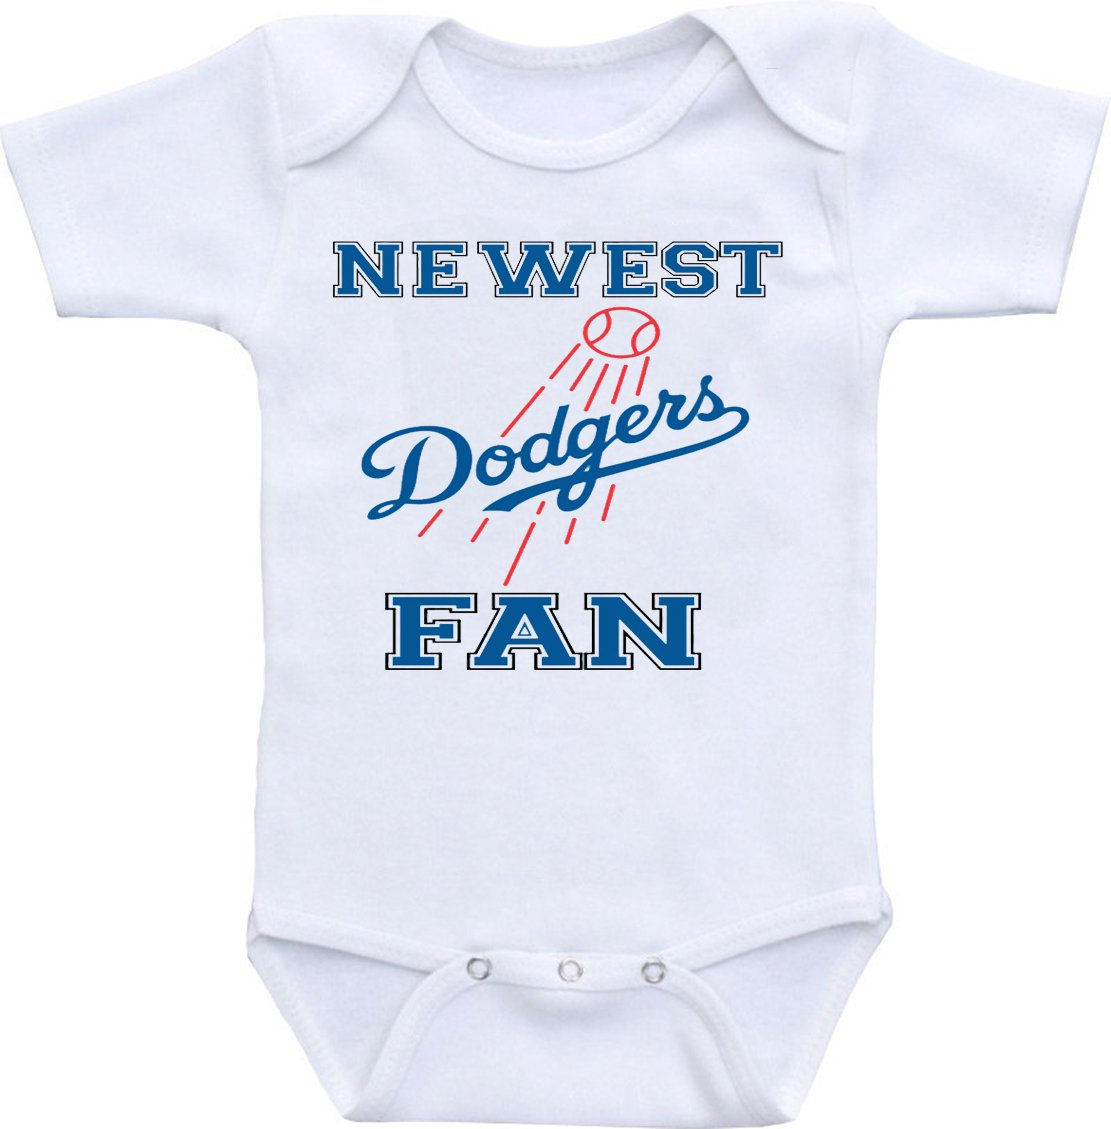 Amazon baby fanatic pacifier set mlb los angeles dodgers baby wonder labs newest dodgers fan funny baby onesie bodysuit buycottarizona Image collections